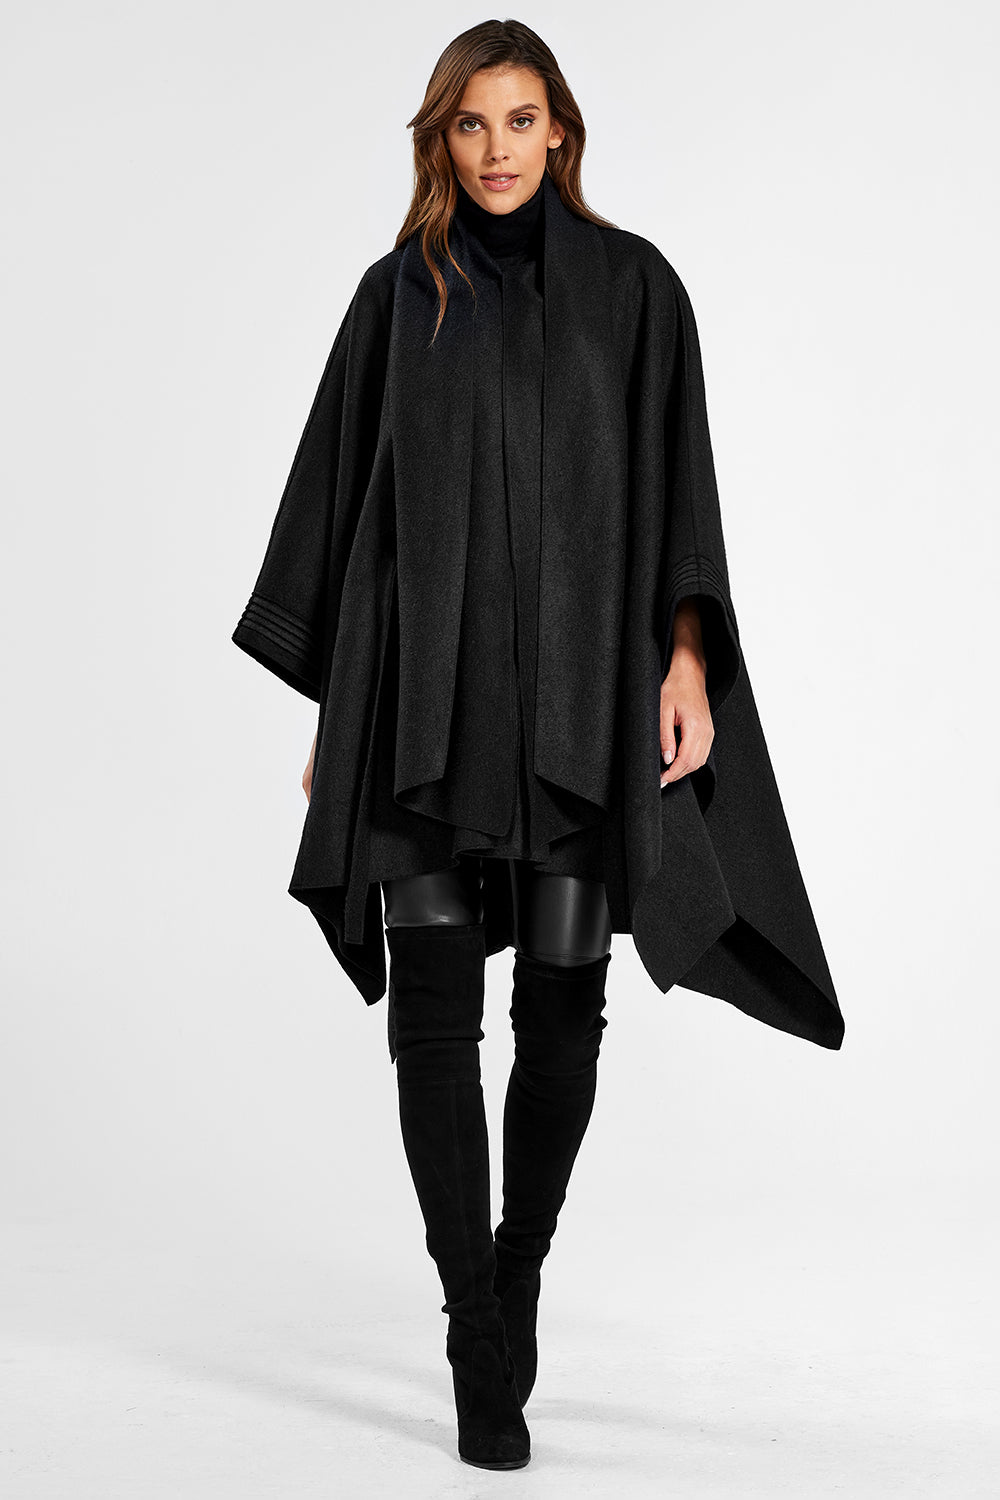 Sentaler Poncho with Shawl Collar and Belt featured in Superfine Alpaca and available in Black. Seen open.